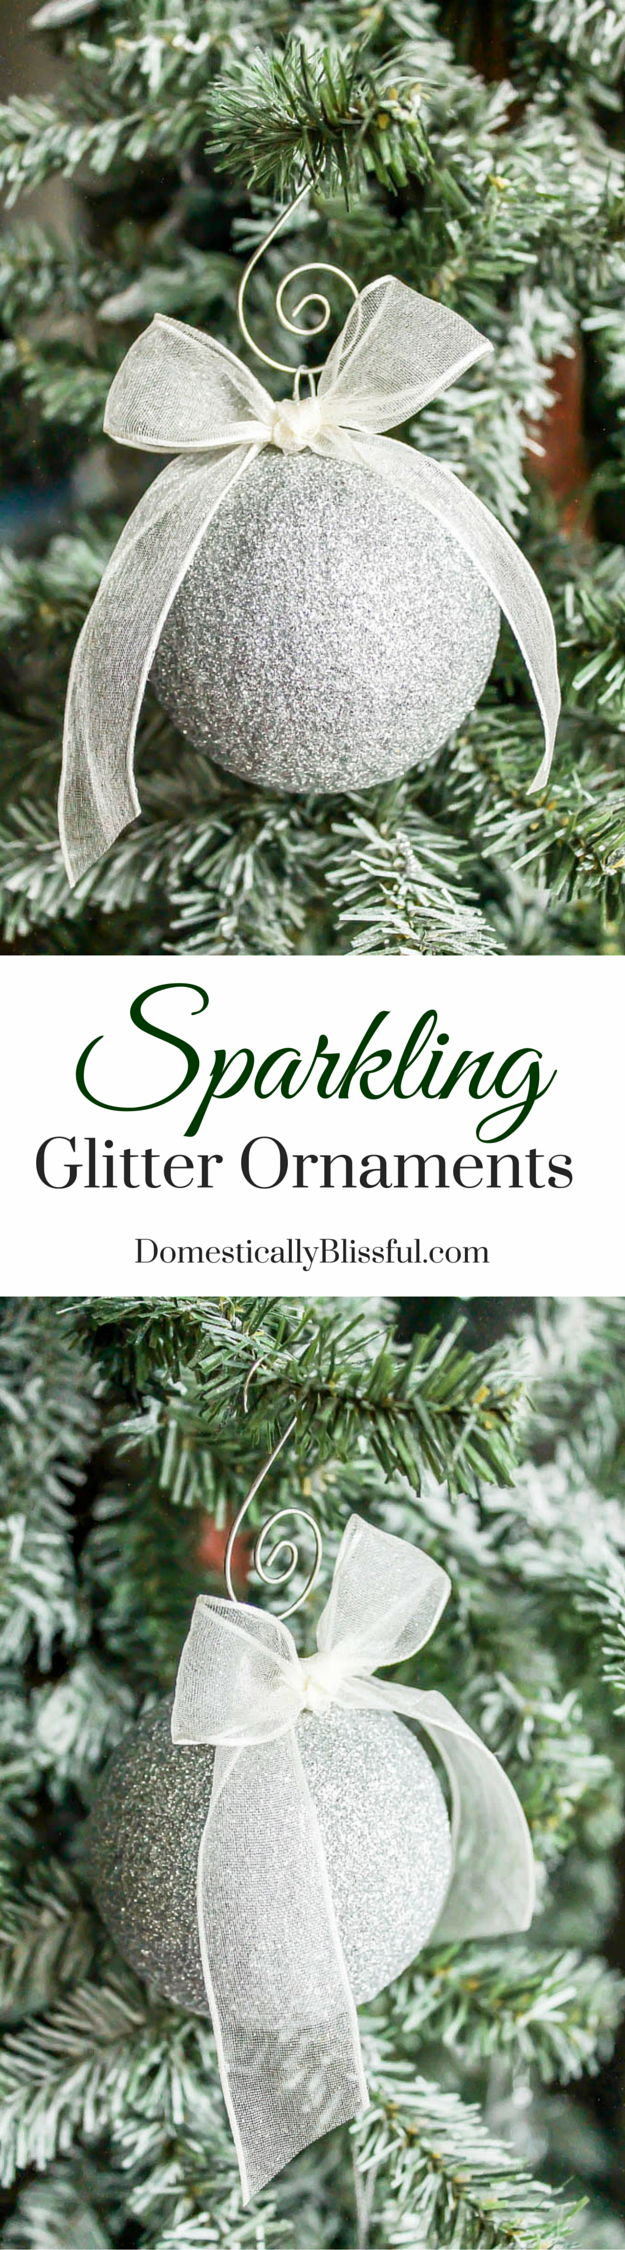 Create your own Sparkling Glitter Ornaments that are nonbreakable, won't lose sparkle, & filled with Christmas cheer